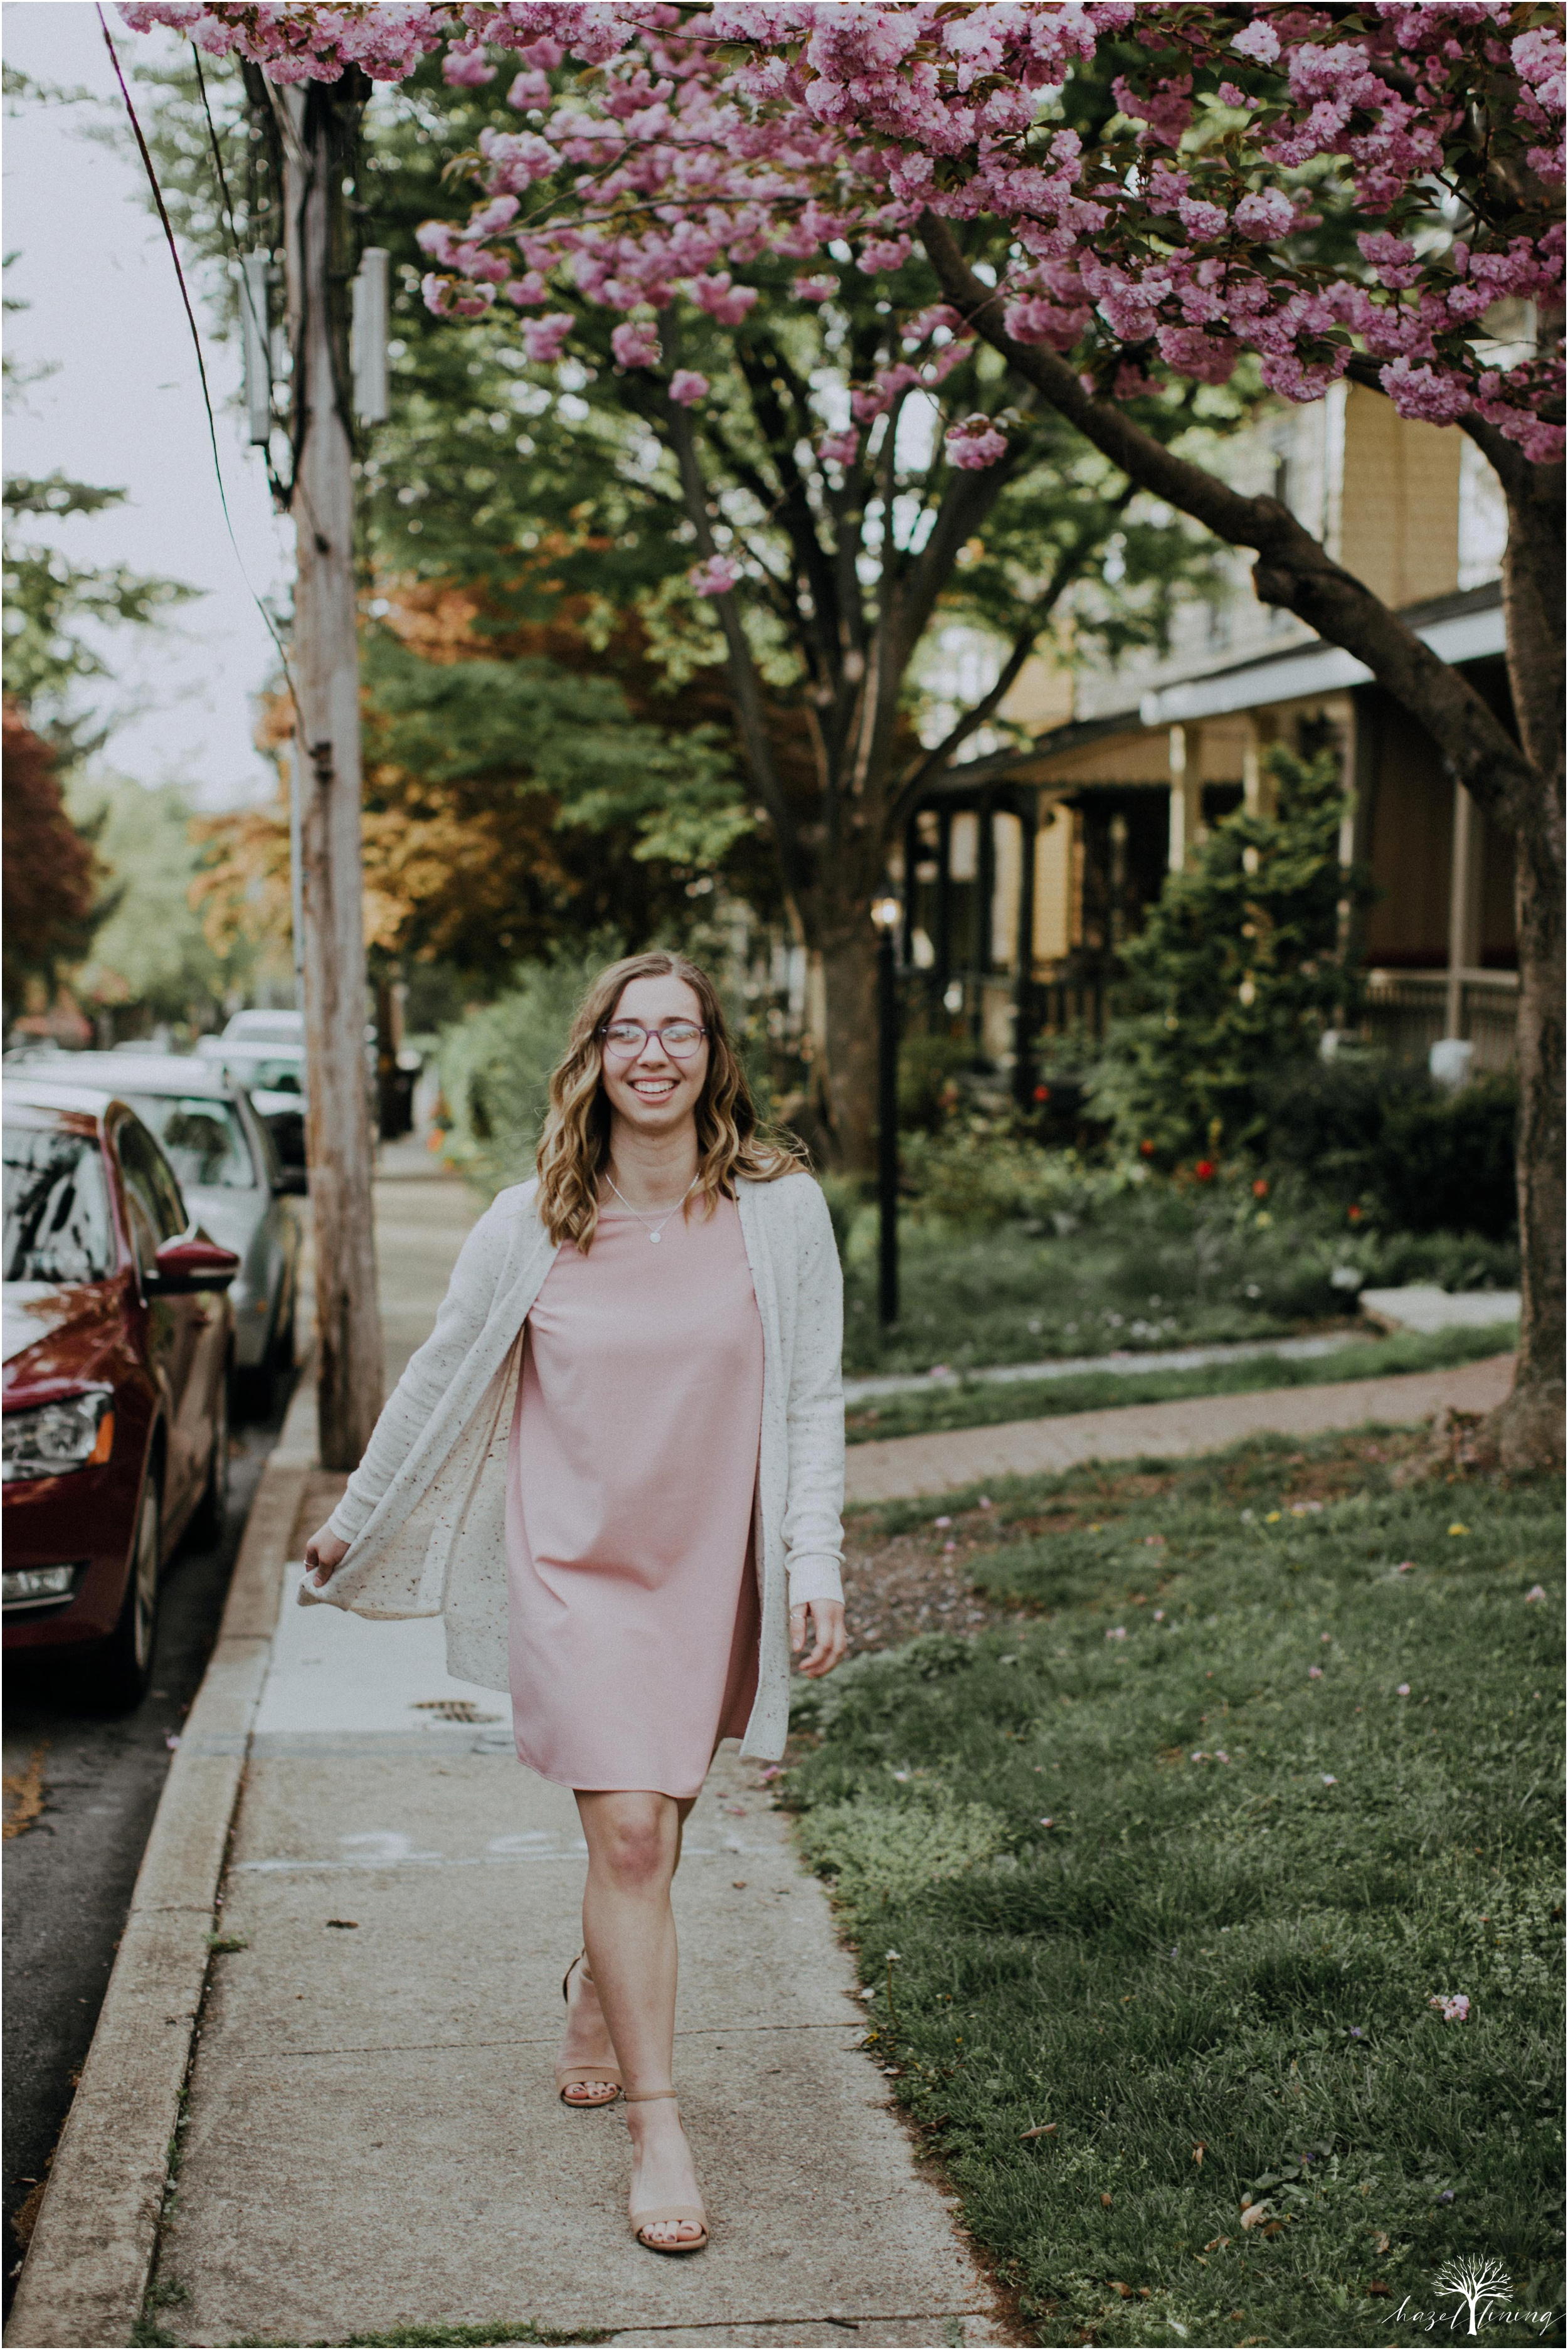 maddie-kiser-senior-portrait-session-doylestown-pennsylvania-spring-hazel-lining-photography-destination-elopement-wedding-engagement-photography-year-in-review_0006.jpg